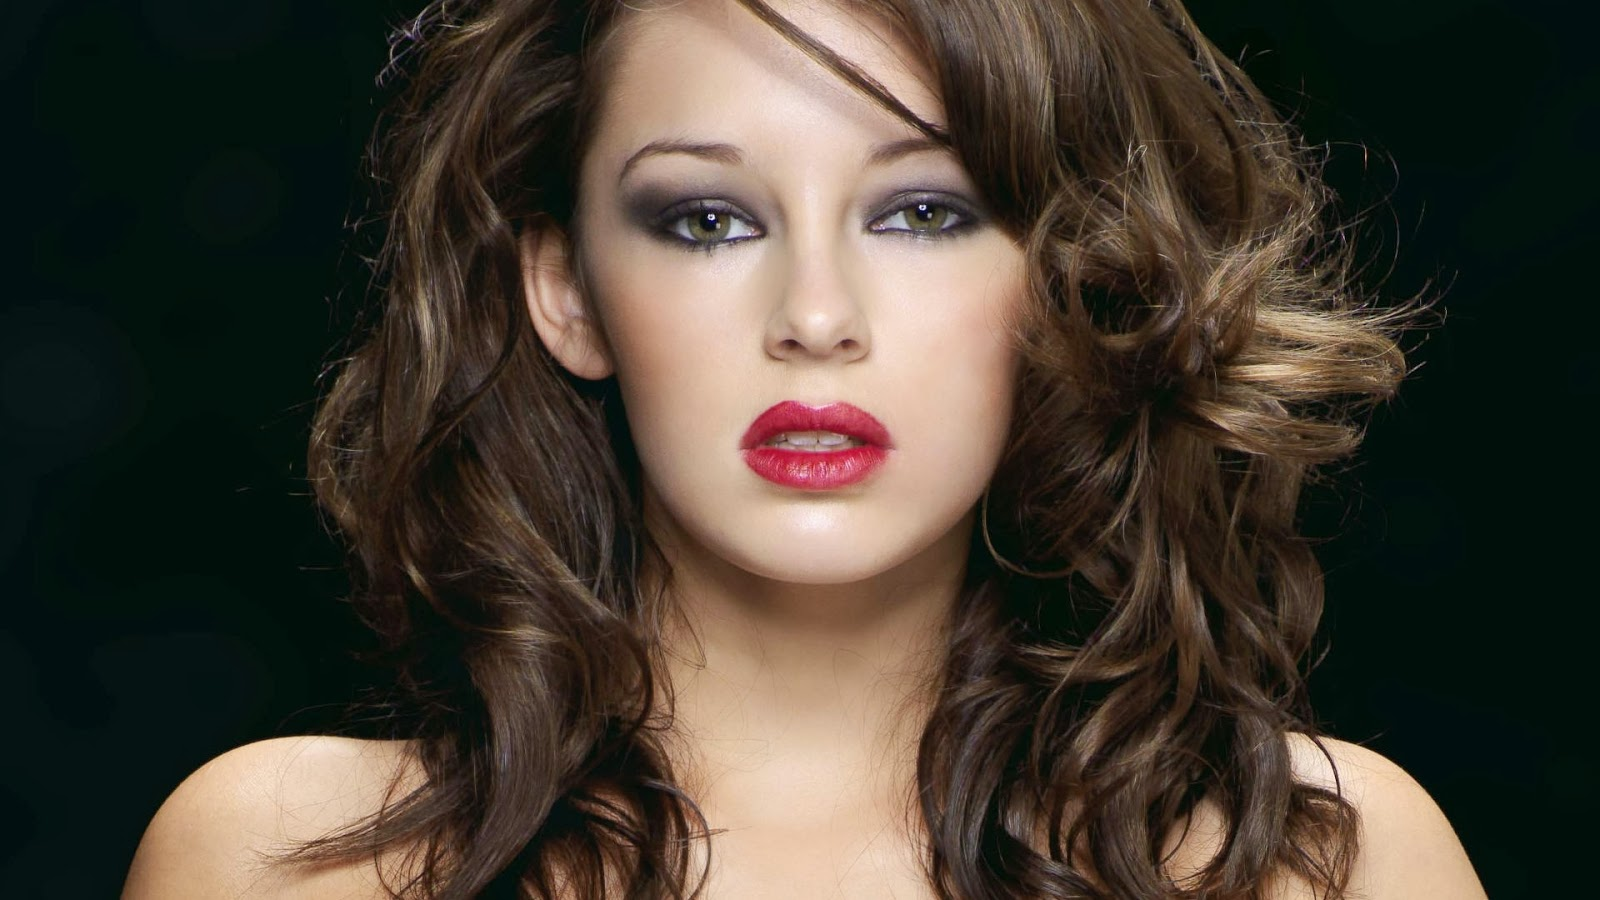 keeley hazell downloads backgrounds - photo #5